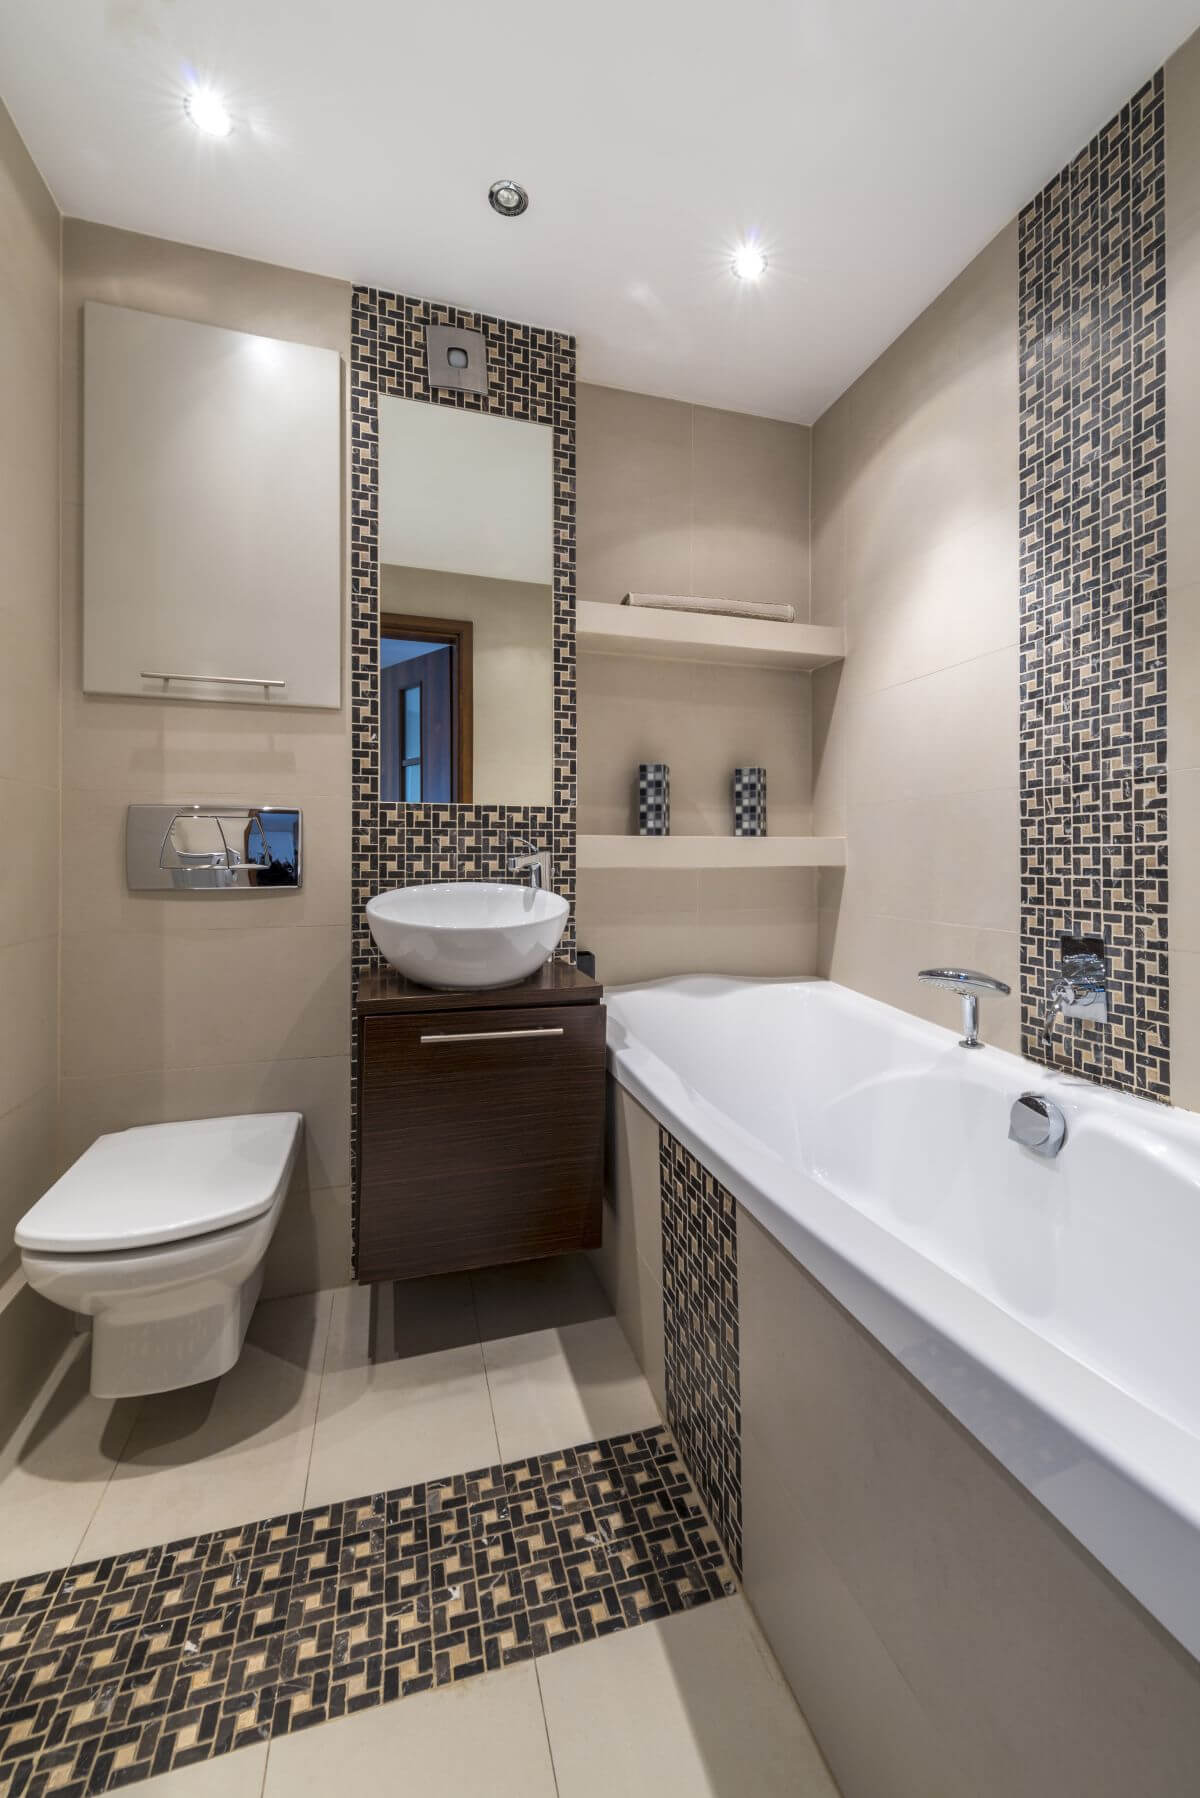 small bathroom design minimalist design with repeated tile patterns ATMUPTB